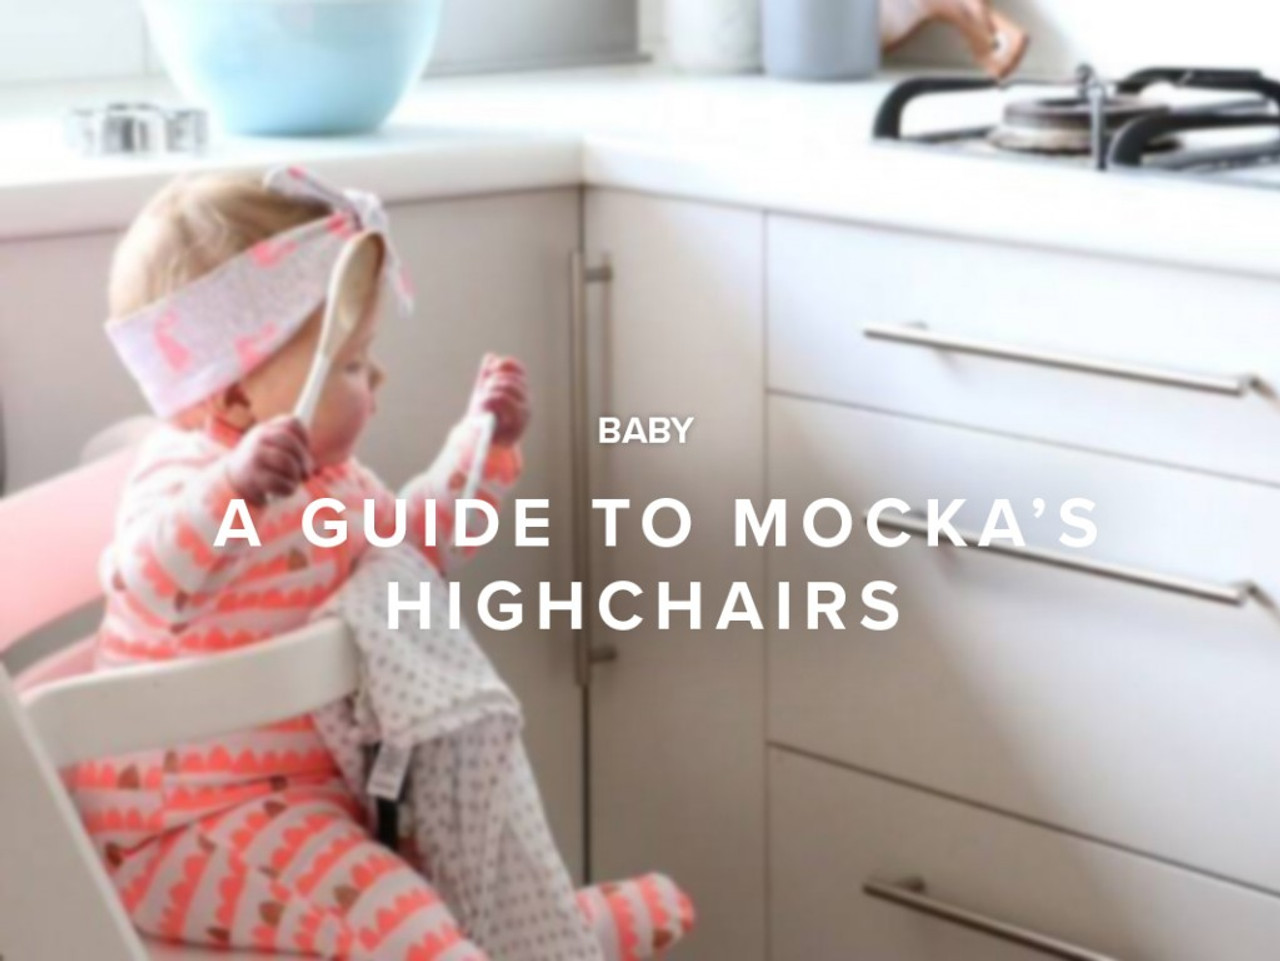 A Guide to Mocka's Highchairs